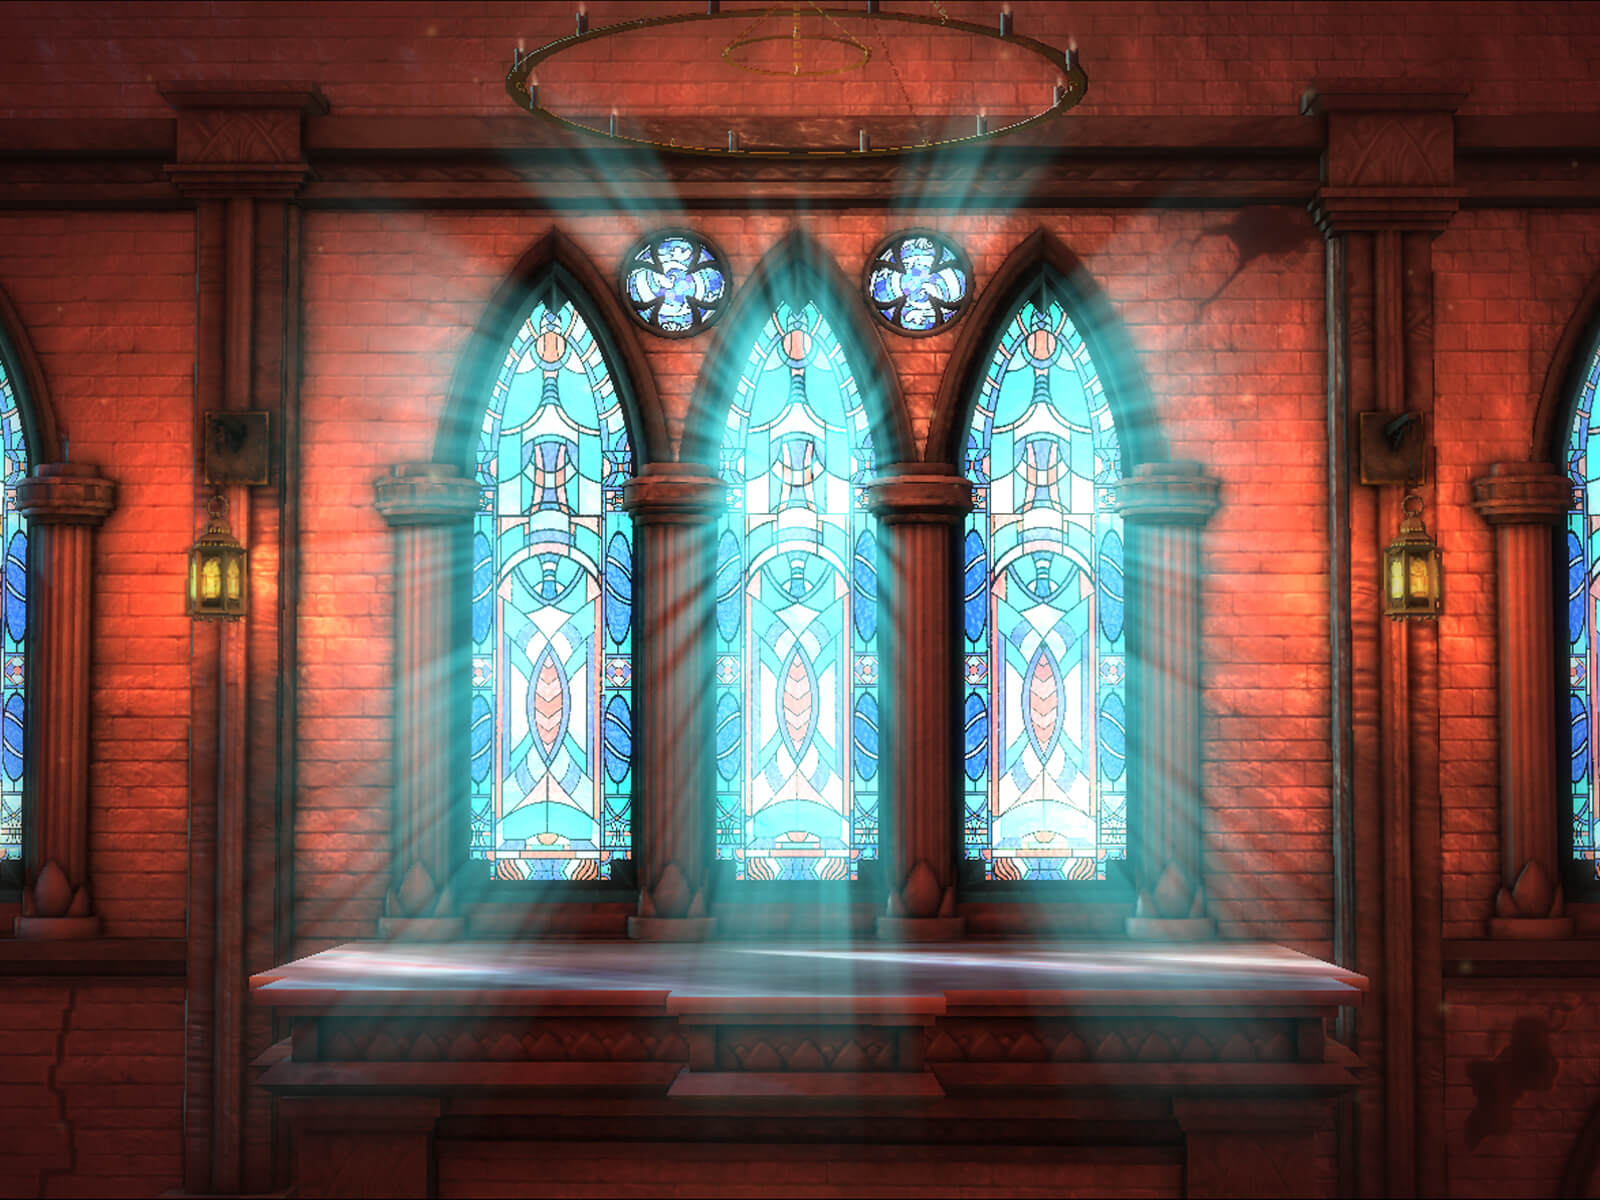 computer-generated 3D environment of the interior of a building with sun pouring through stained glass windows